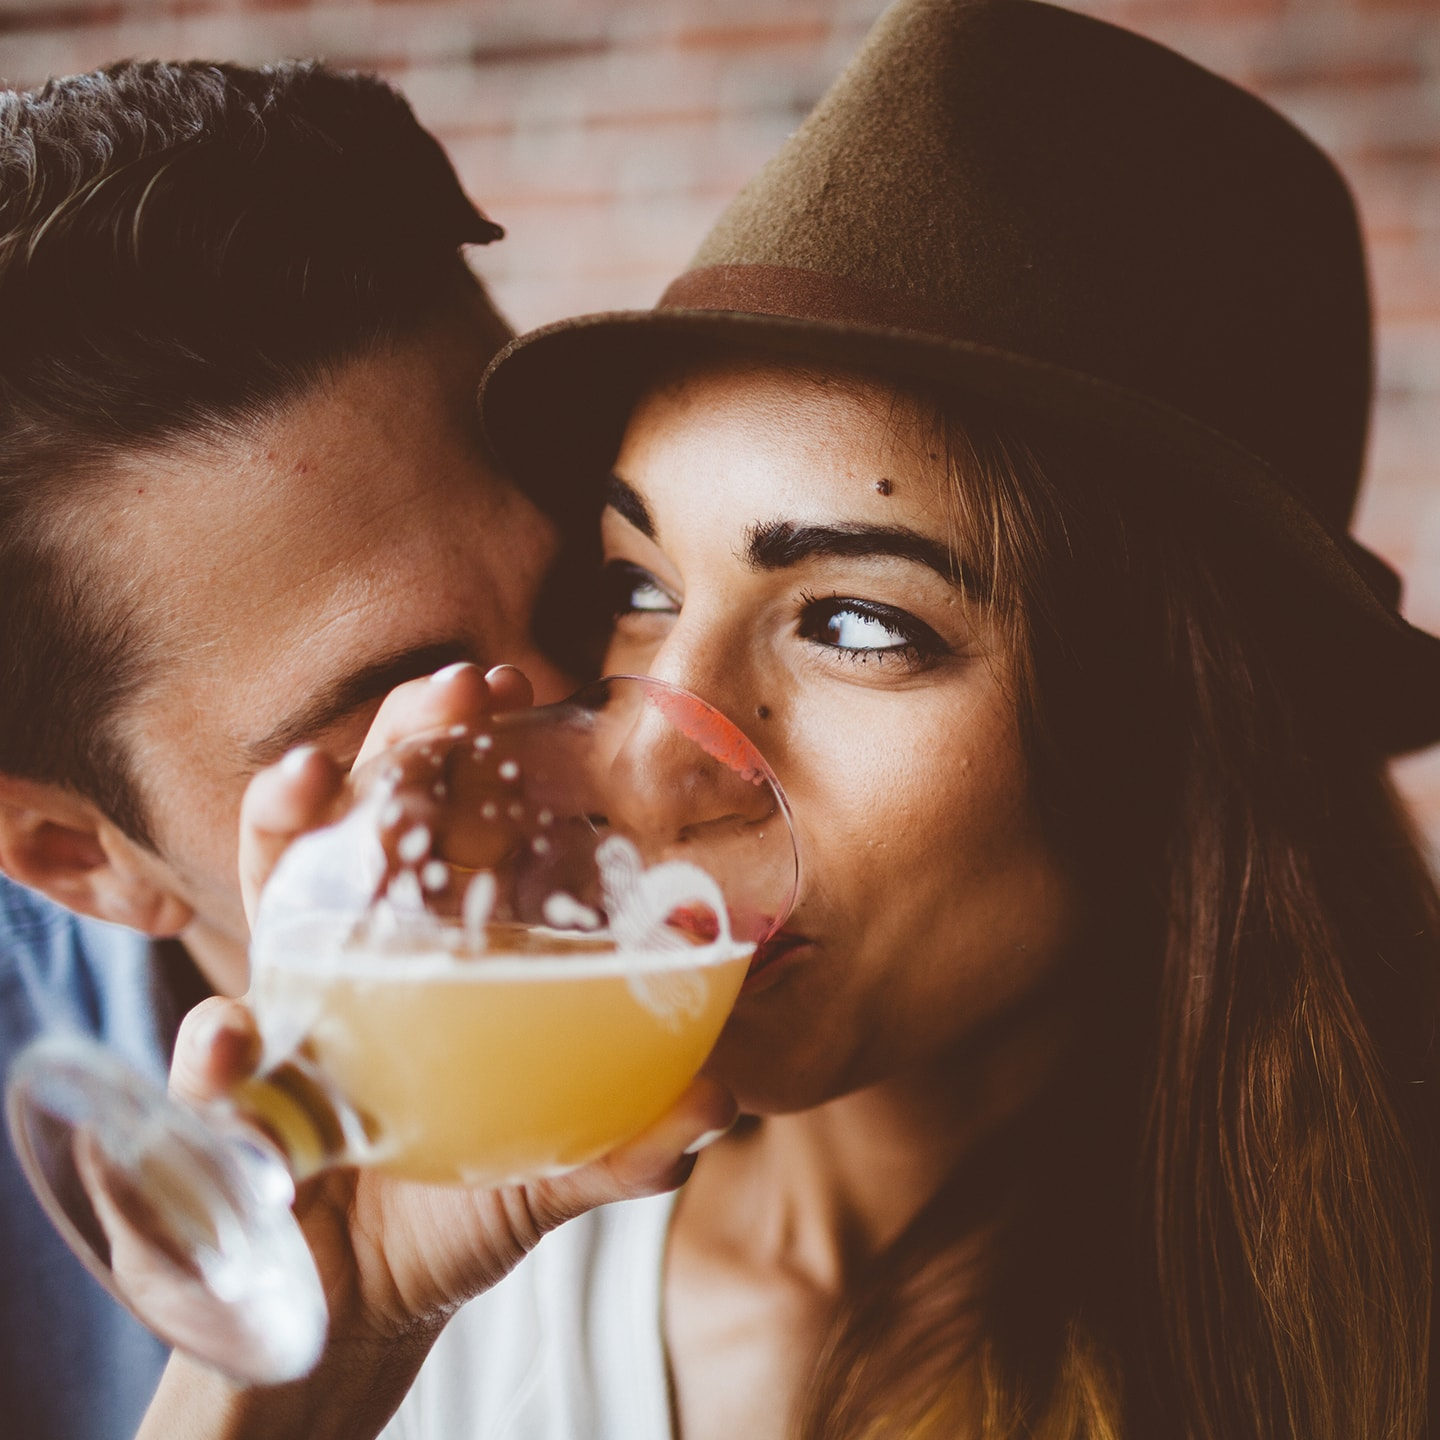 A woman drinking a beer with a man kissing her on the cheek,